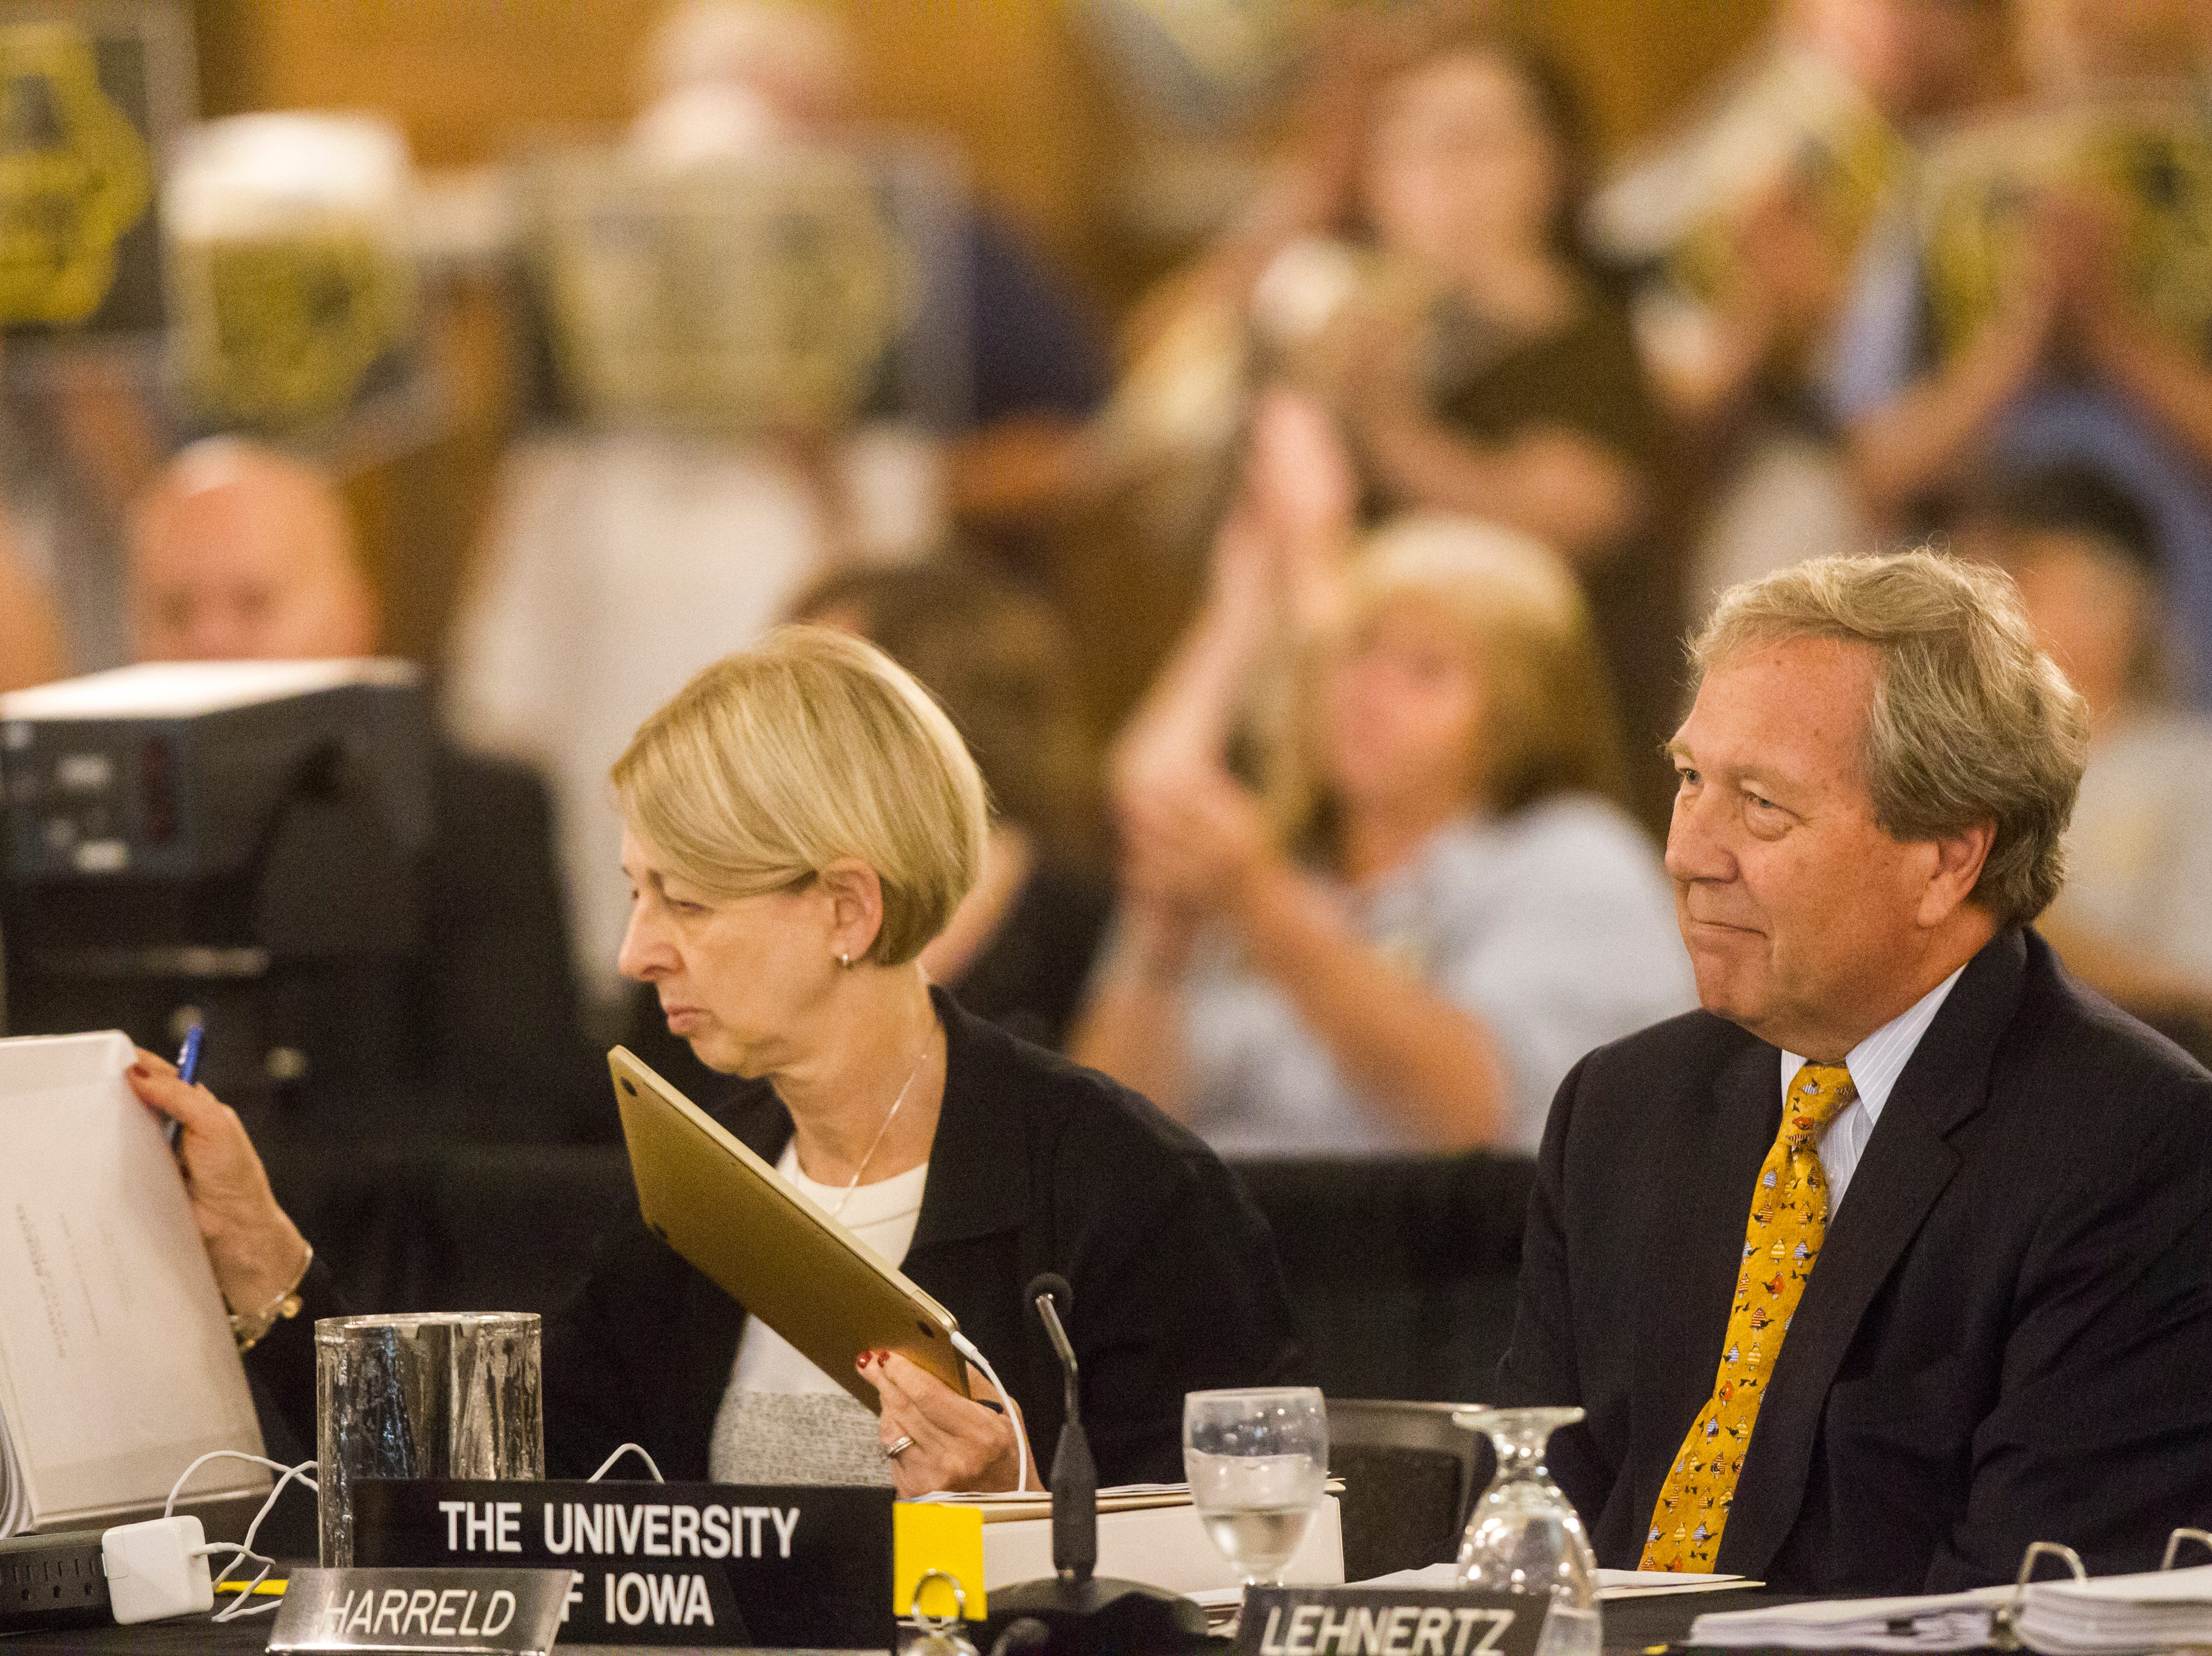 University of Iowa President J. Bruce Harreld (right) listens to public comment during an Iowa Board of Regents meeting on Thursday, Sept. 13, 2018, in the Iowa Memorial Union main ballroom on the University of Iowa campus in Iowa City.